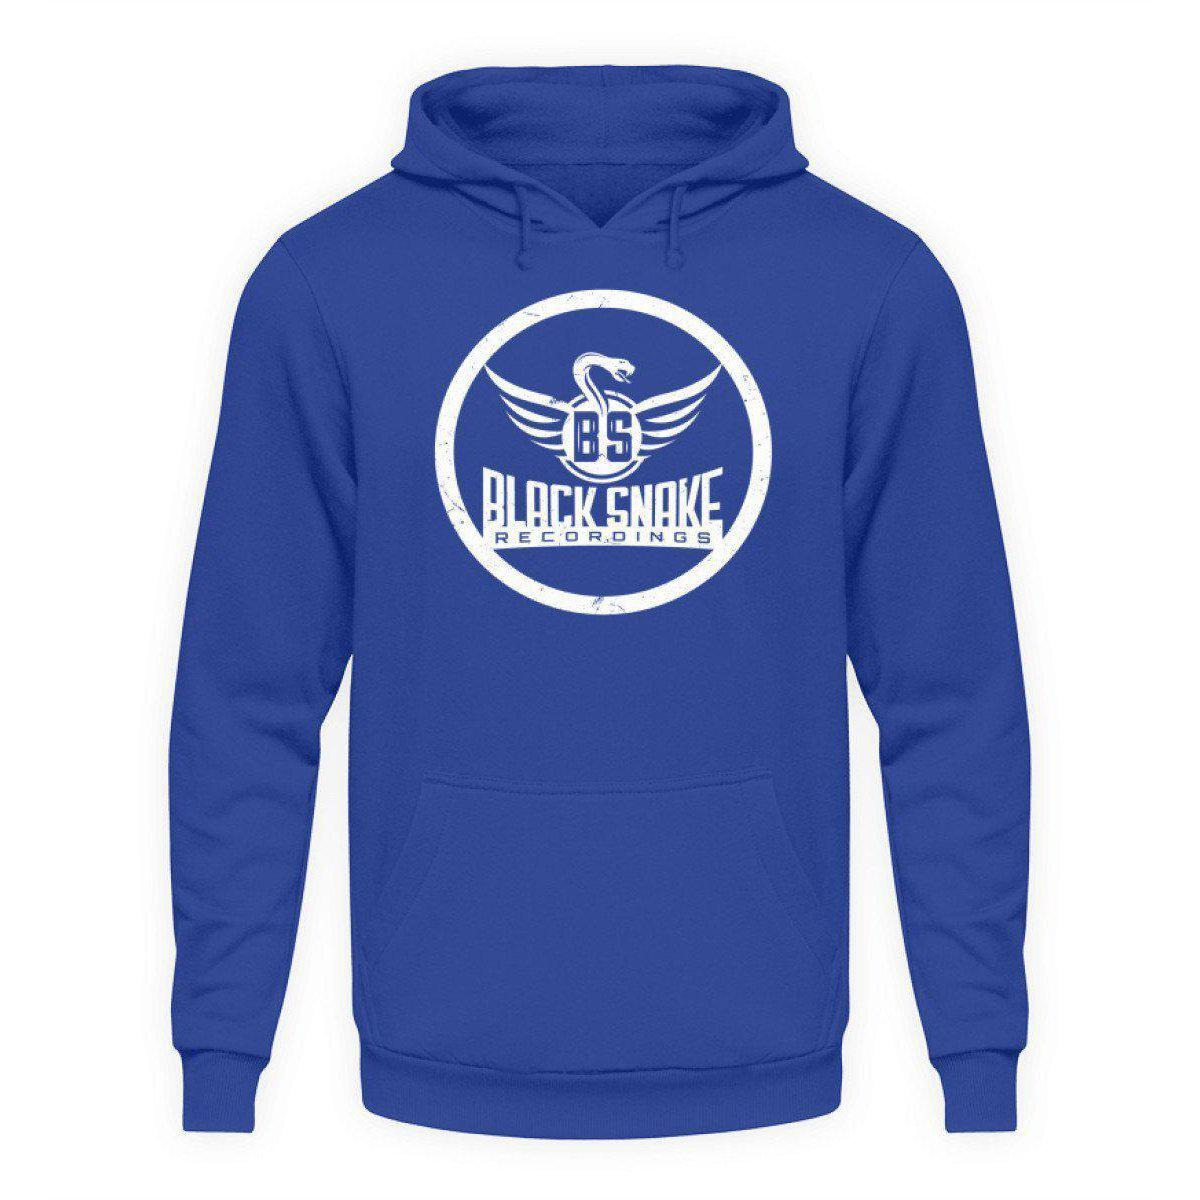 Black Snake Recordings Collection - Unisex Kapuzenpullover Hoodie Unisex Hoodie Royal Blue / L - Rave On!® der Club & Techno Szene Shop für Coole Junge Mode Streetwear Style & Fashion Outfits + Sexy Festival 420 Stuff